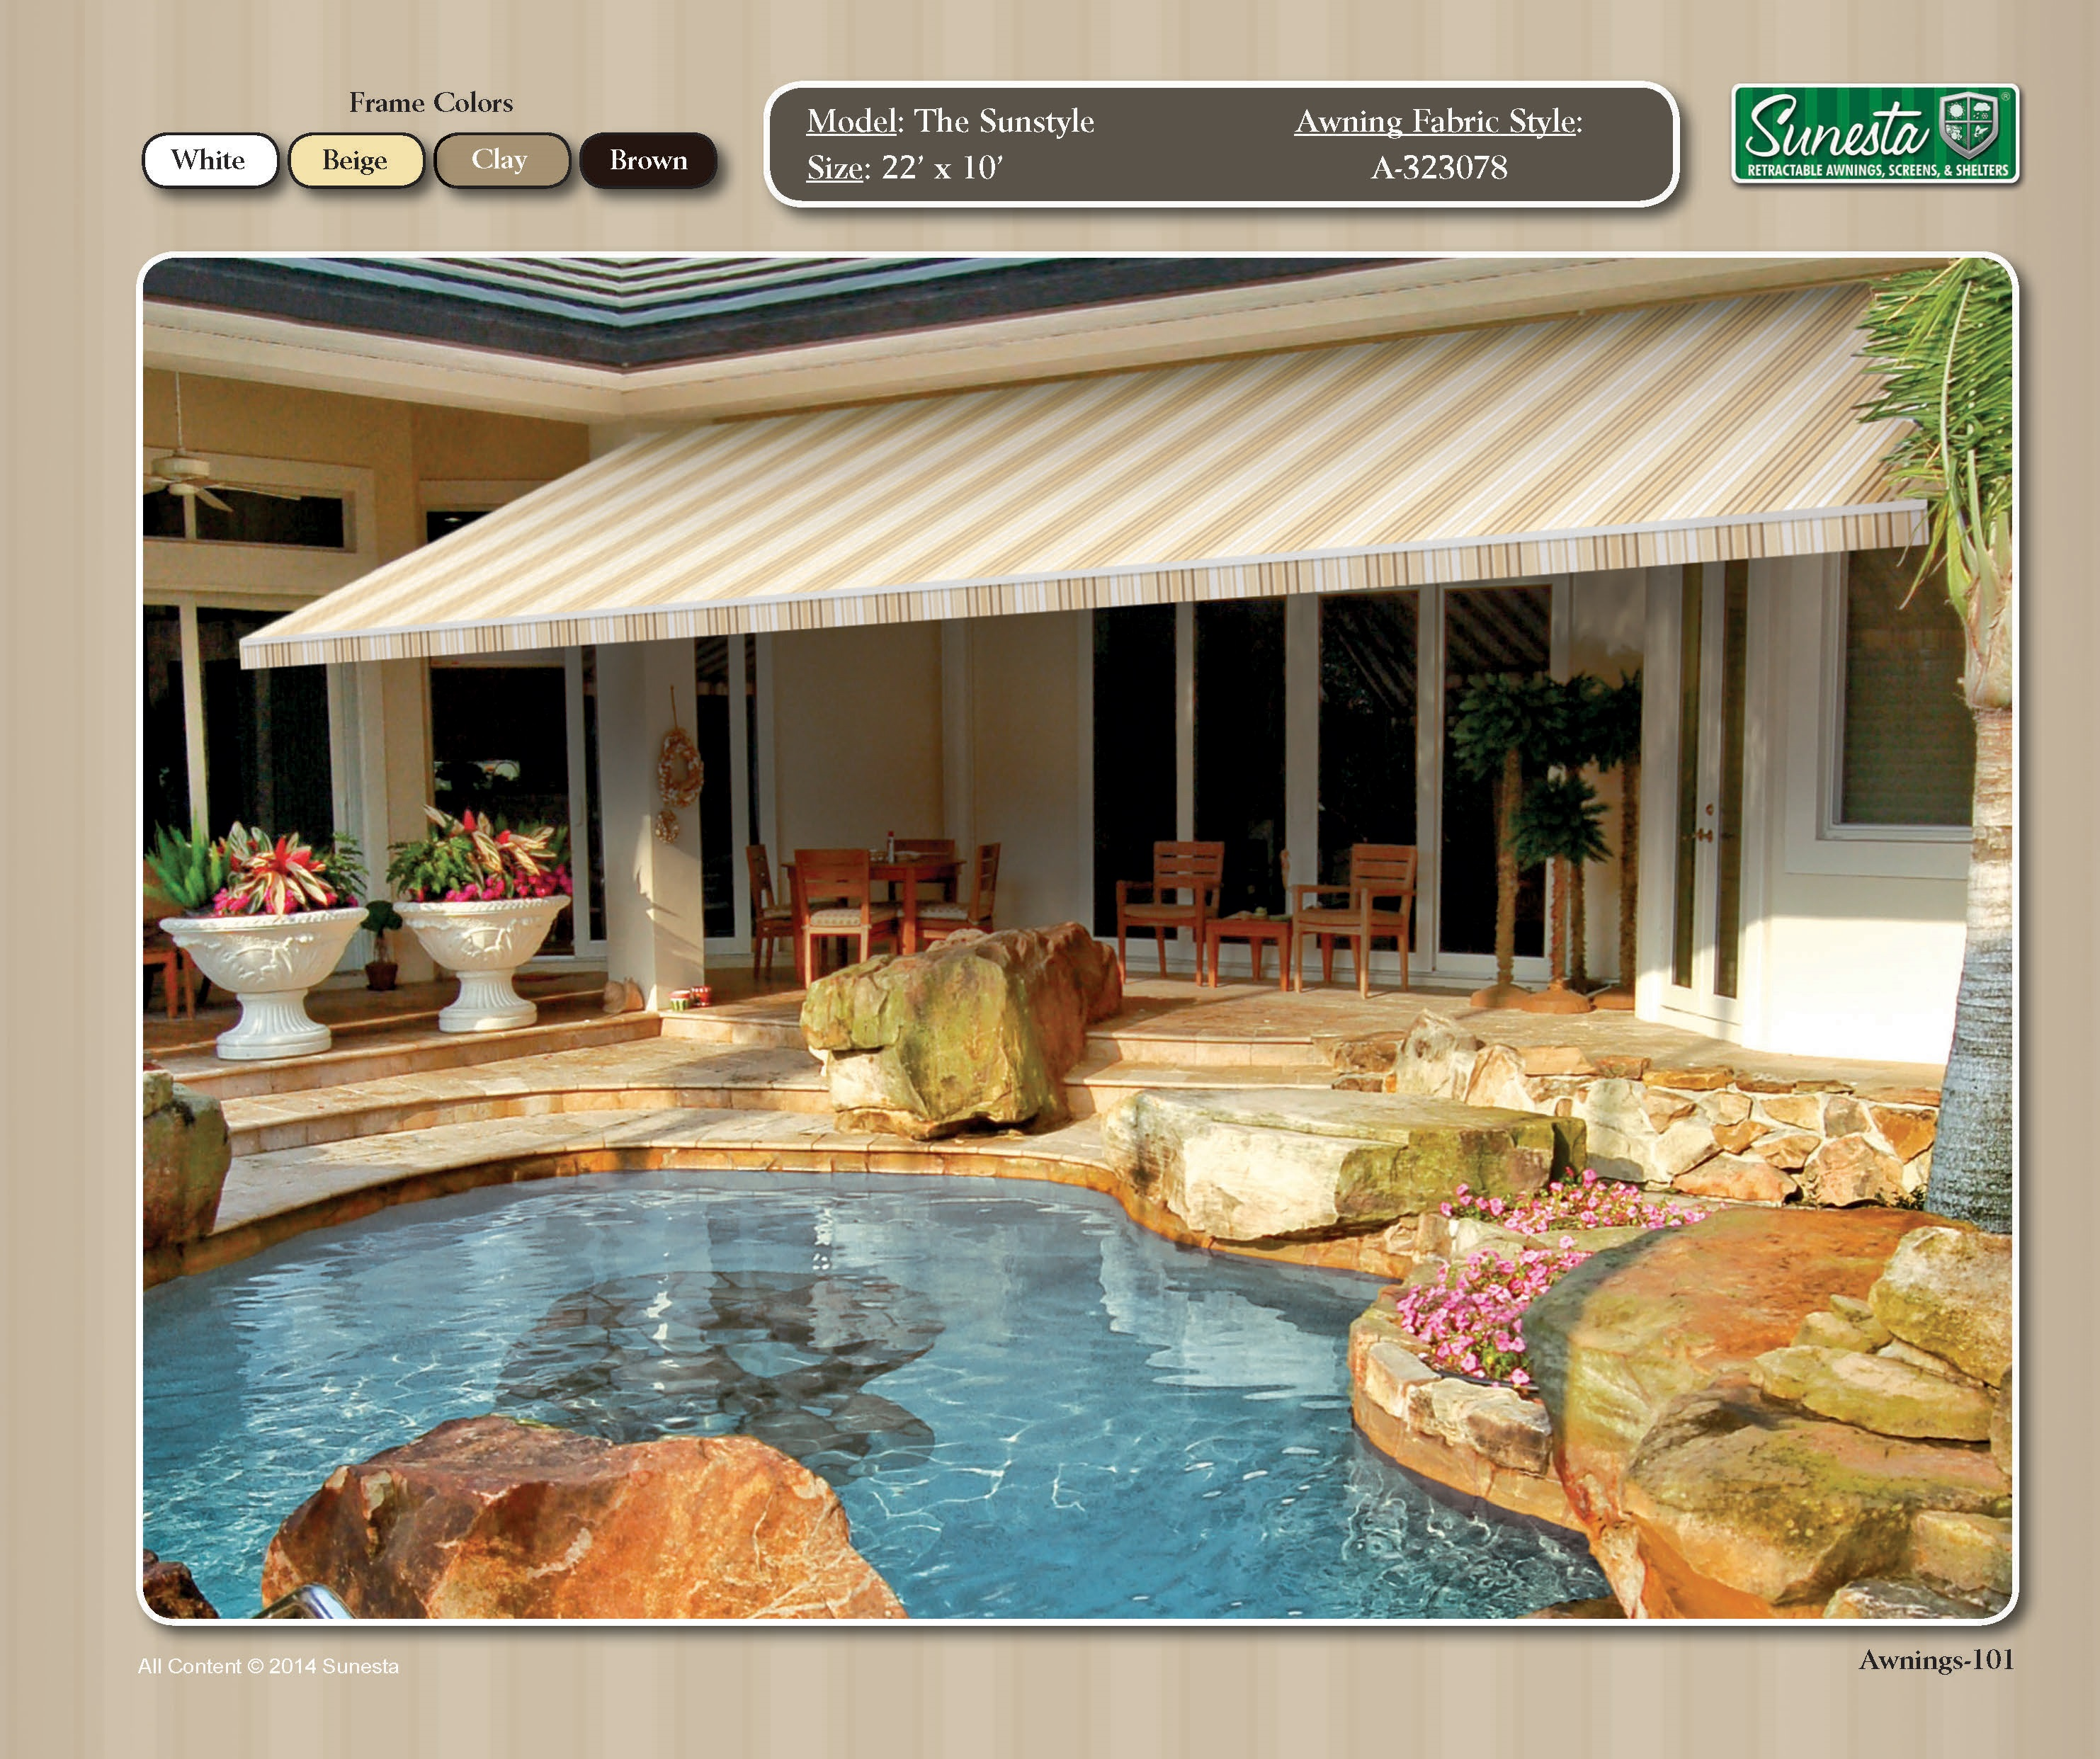 The Sunstyle Retractable Awning